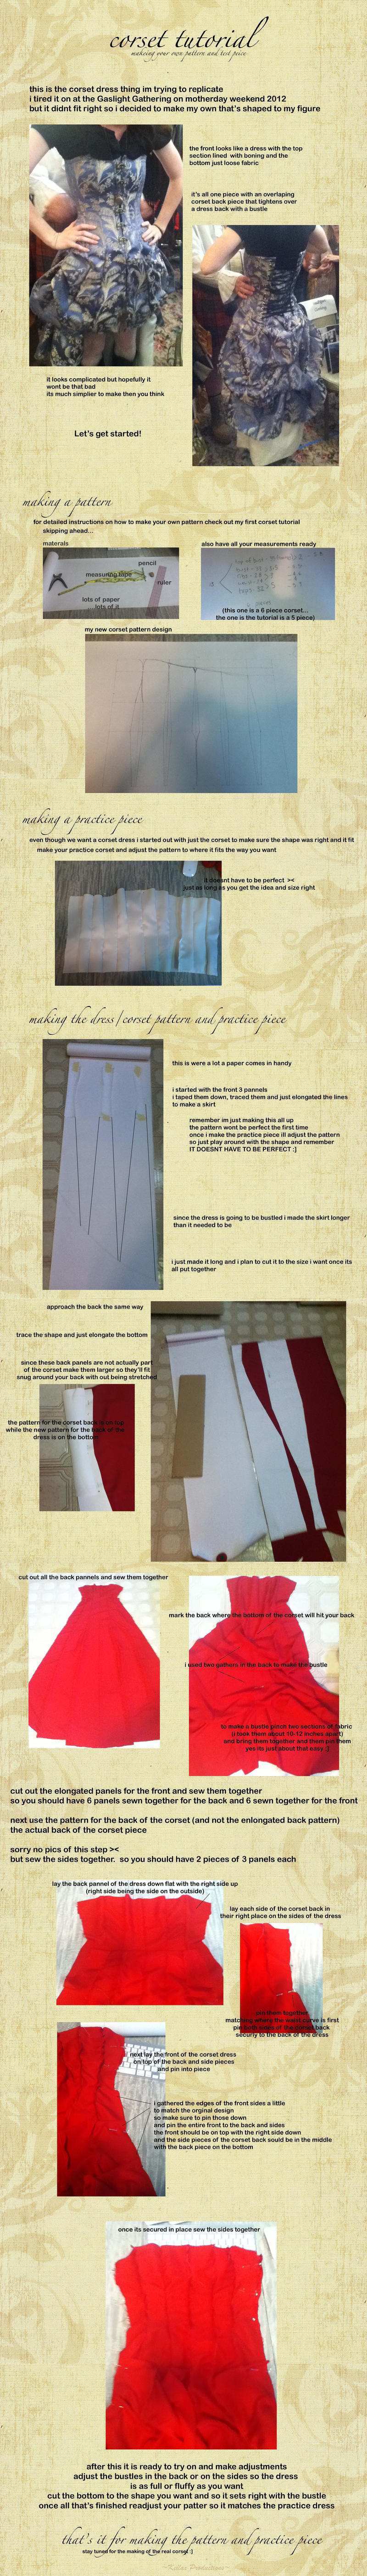 corset dress pattern tutorial by KellaxProductions